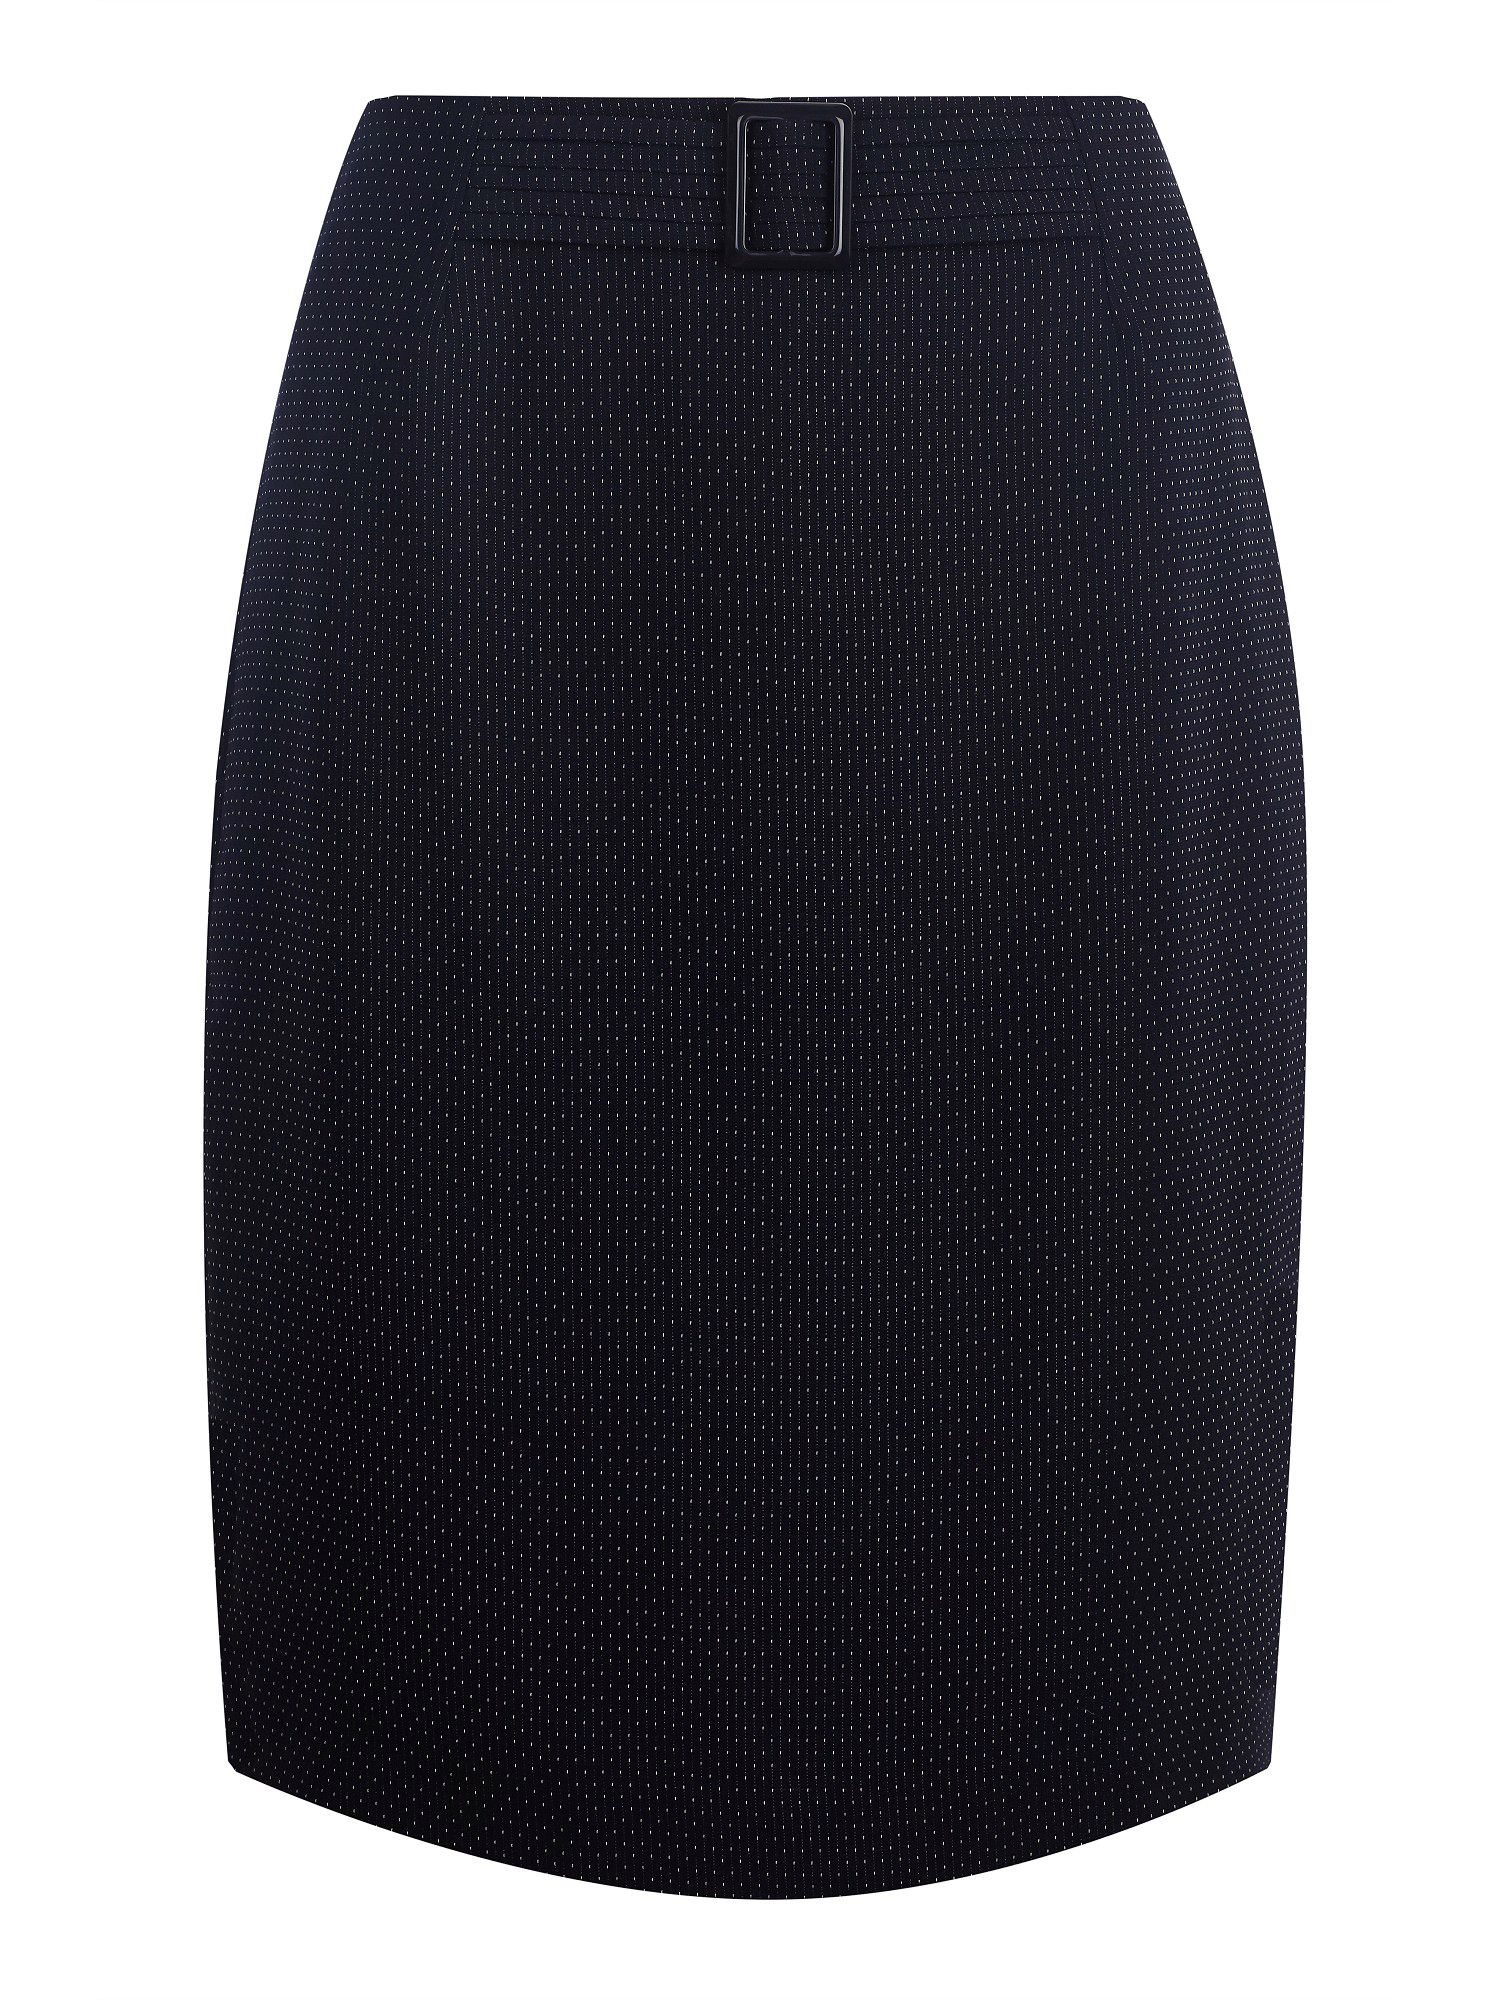 Navy pindot skirt